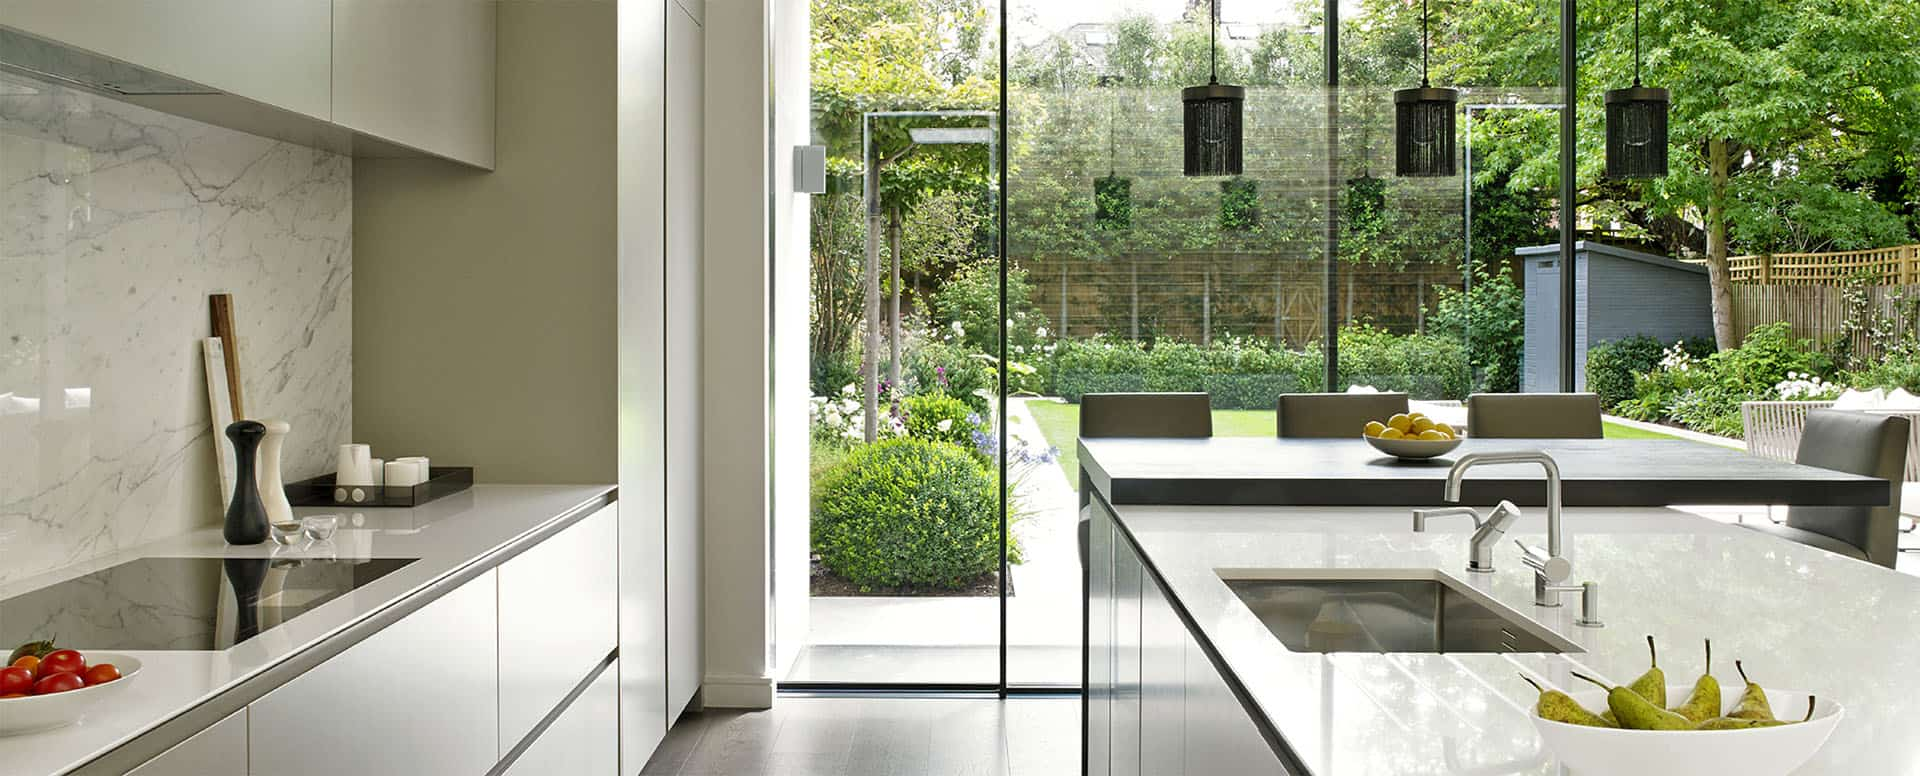 Grey modern Kitchen design, Wandsworth - minimalist, handleless kitchen cabinets and induction hob, island with sink, breakfast bar and sliding glass doors leading out into garden